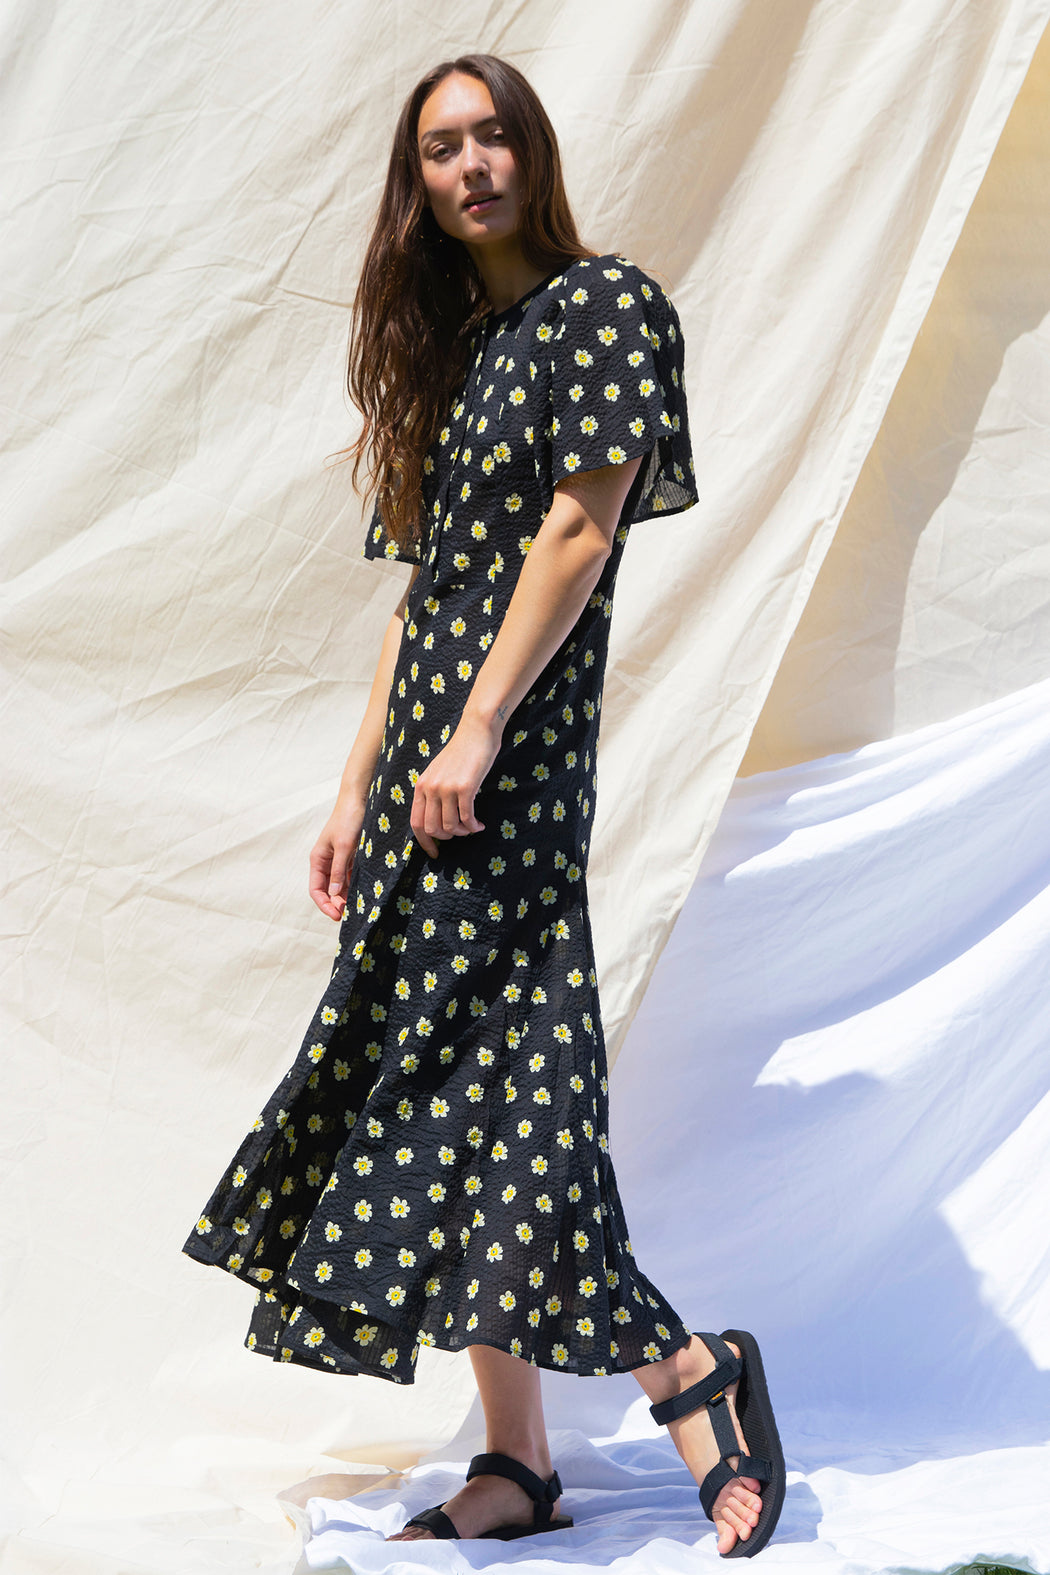 Permanent Vacation Lykke Floral Dress in Black